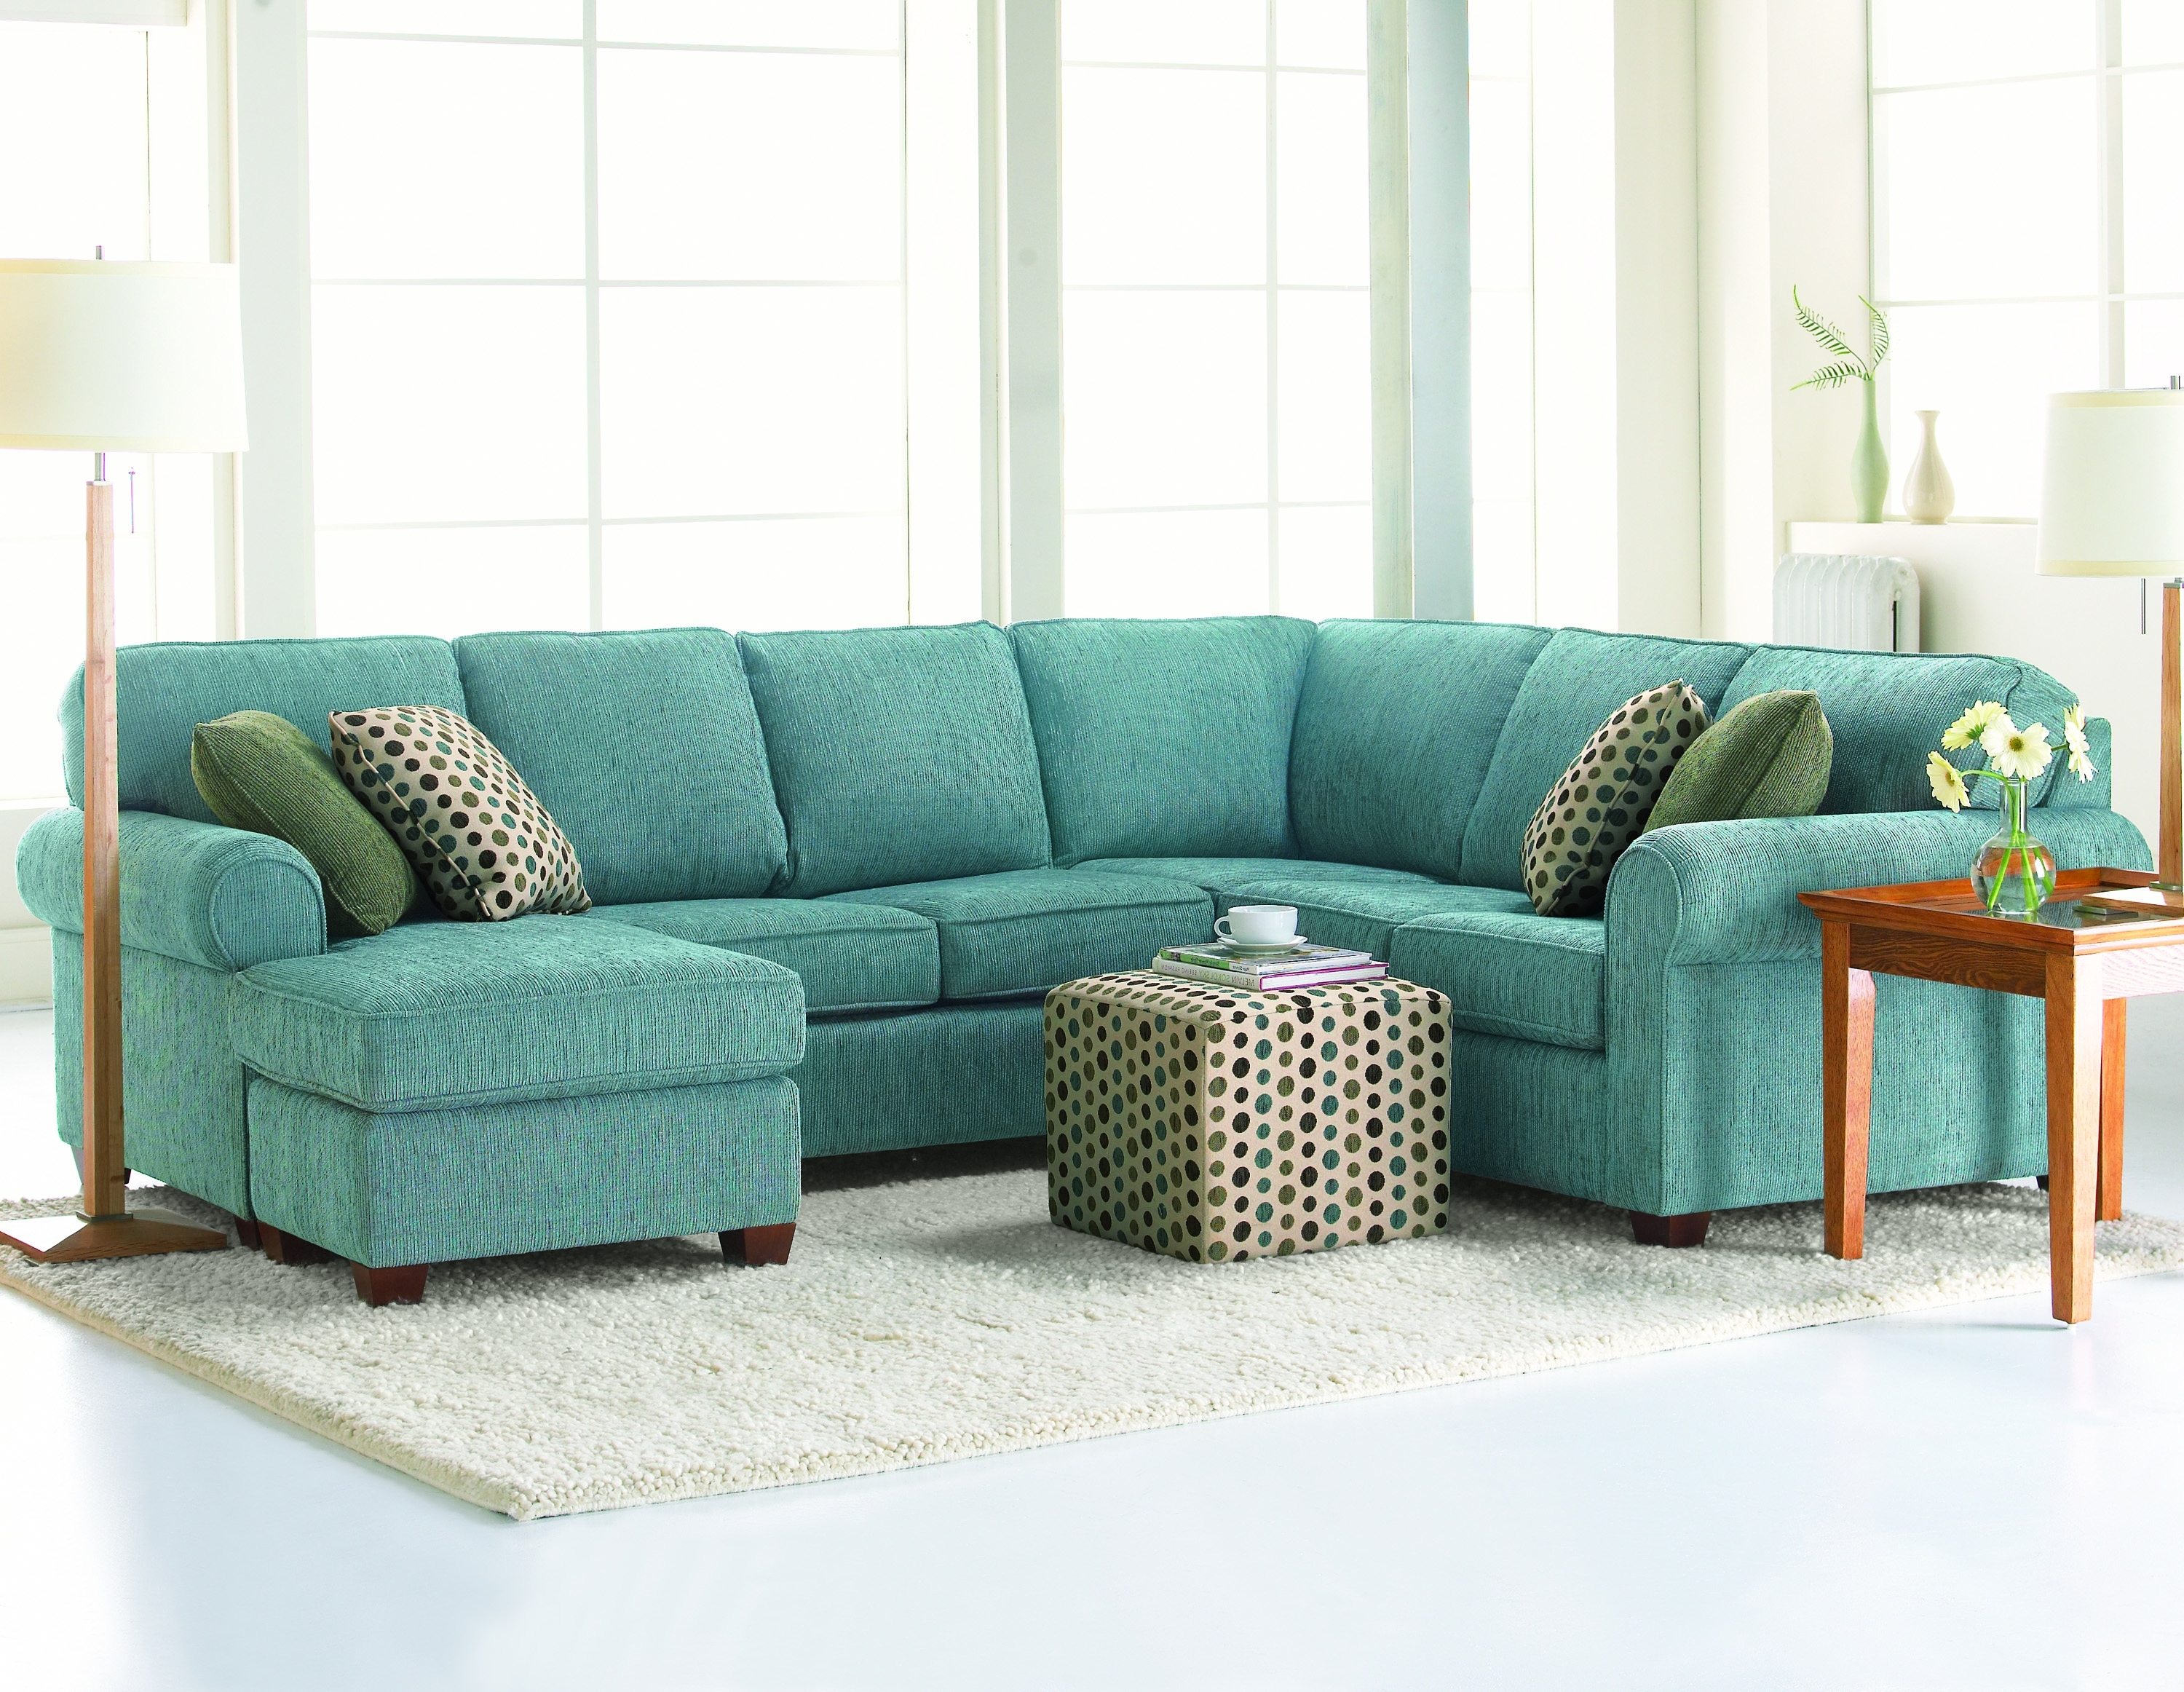 2019 Newmarket Ontario Sectional Sofas Throughout Sectional Sofas – Thompson Brothers Furniture (View 2 of 20)